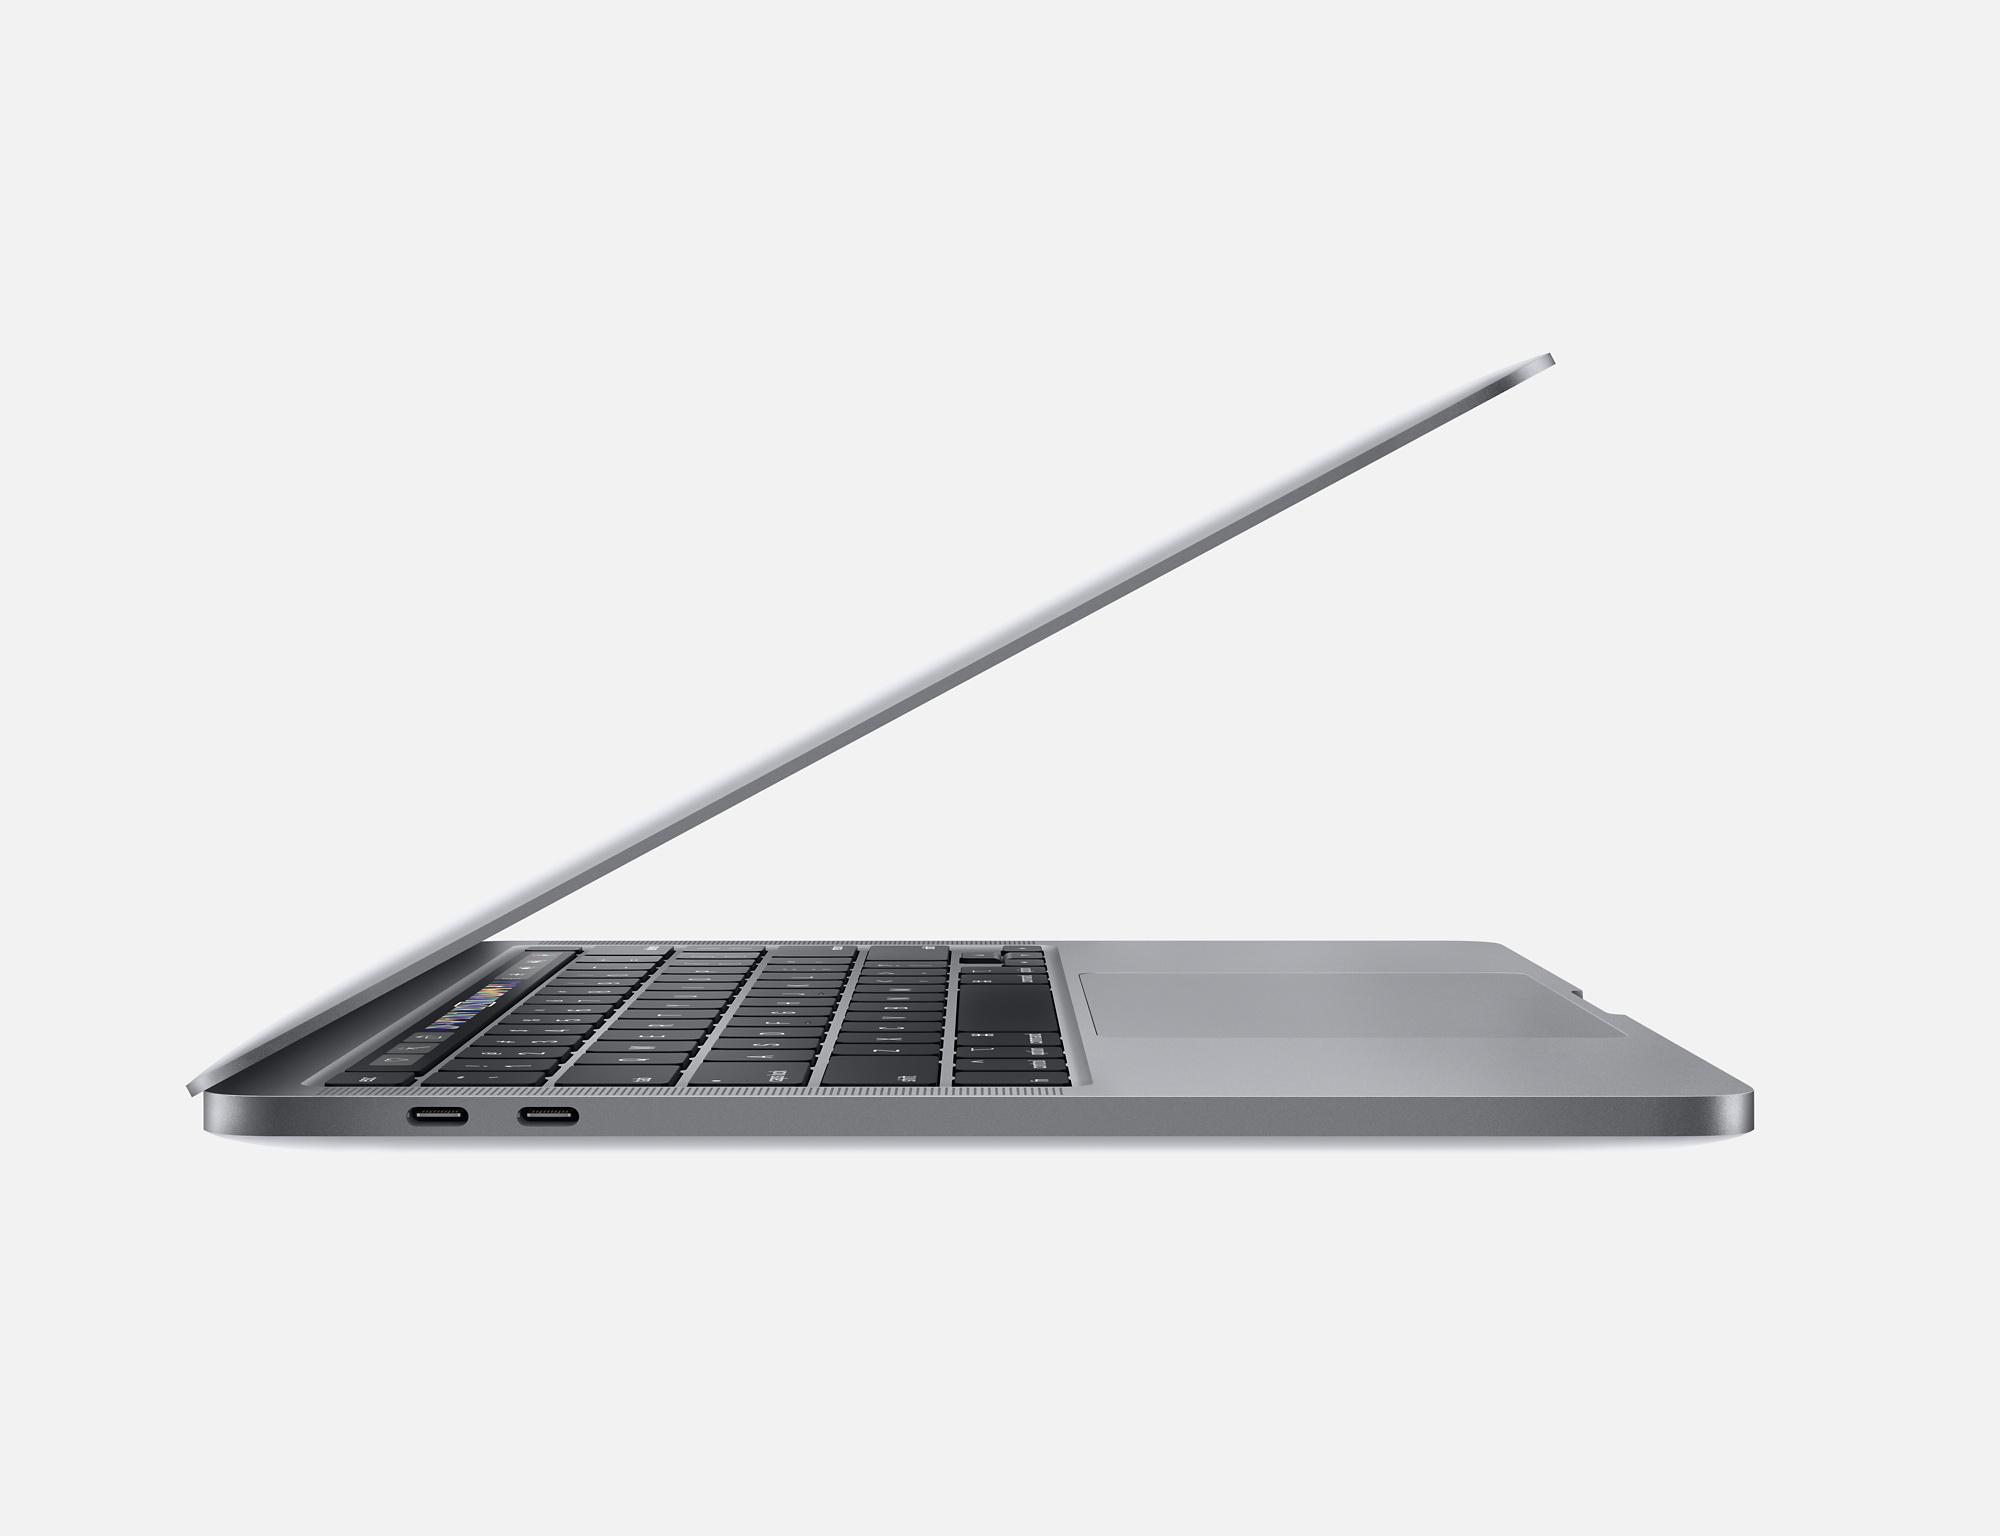 """Apple MacBook Pro with Touch Bar - Core i5 1.4 GHz - macOS Catalina 10.15 - 8 GB RAM - 256 GB SSD - 33.8 cm (13.3"""")"""